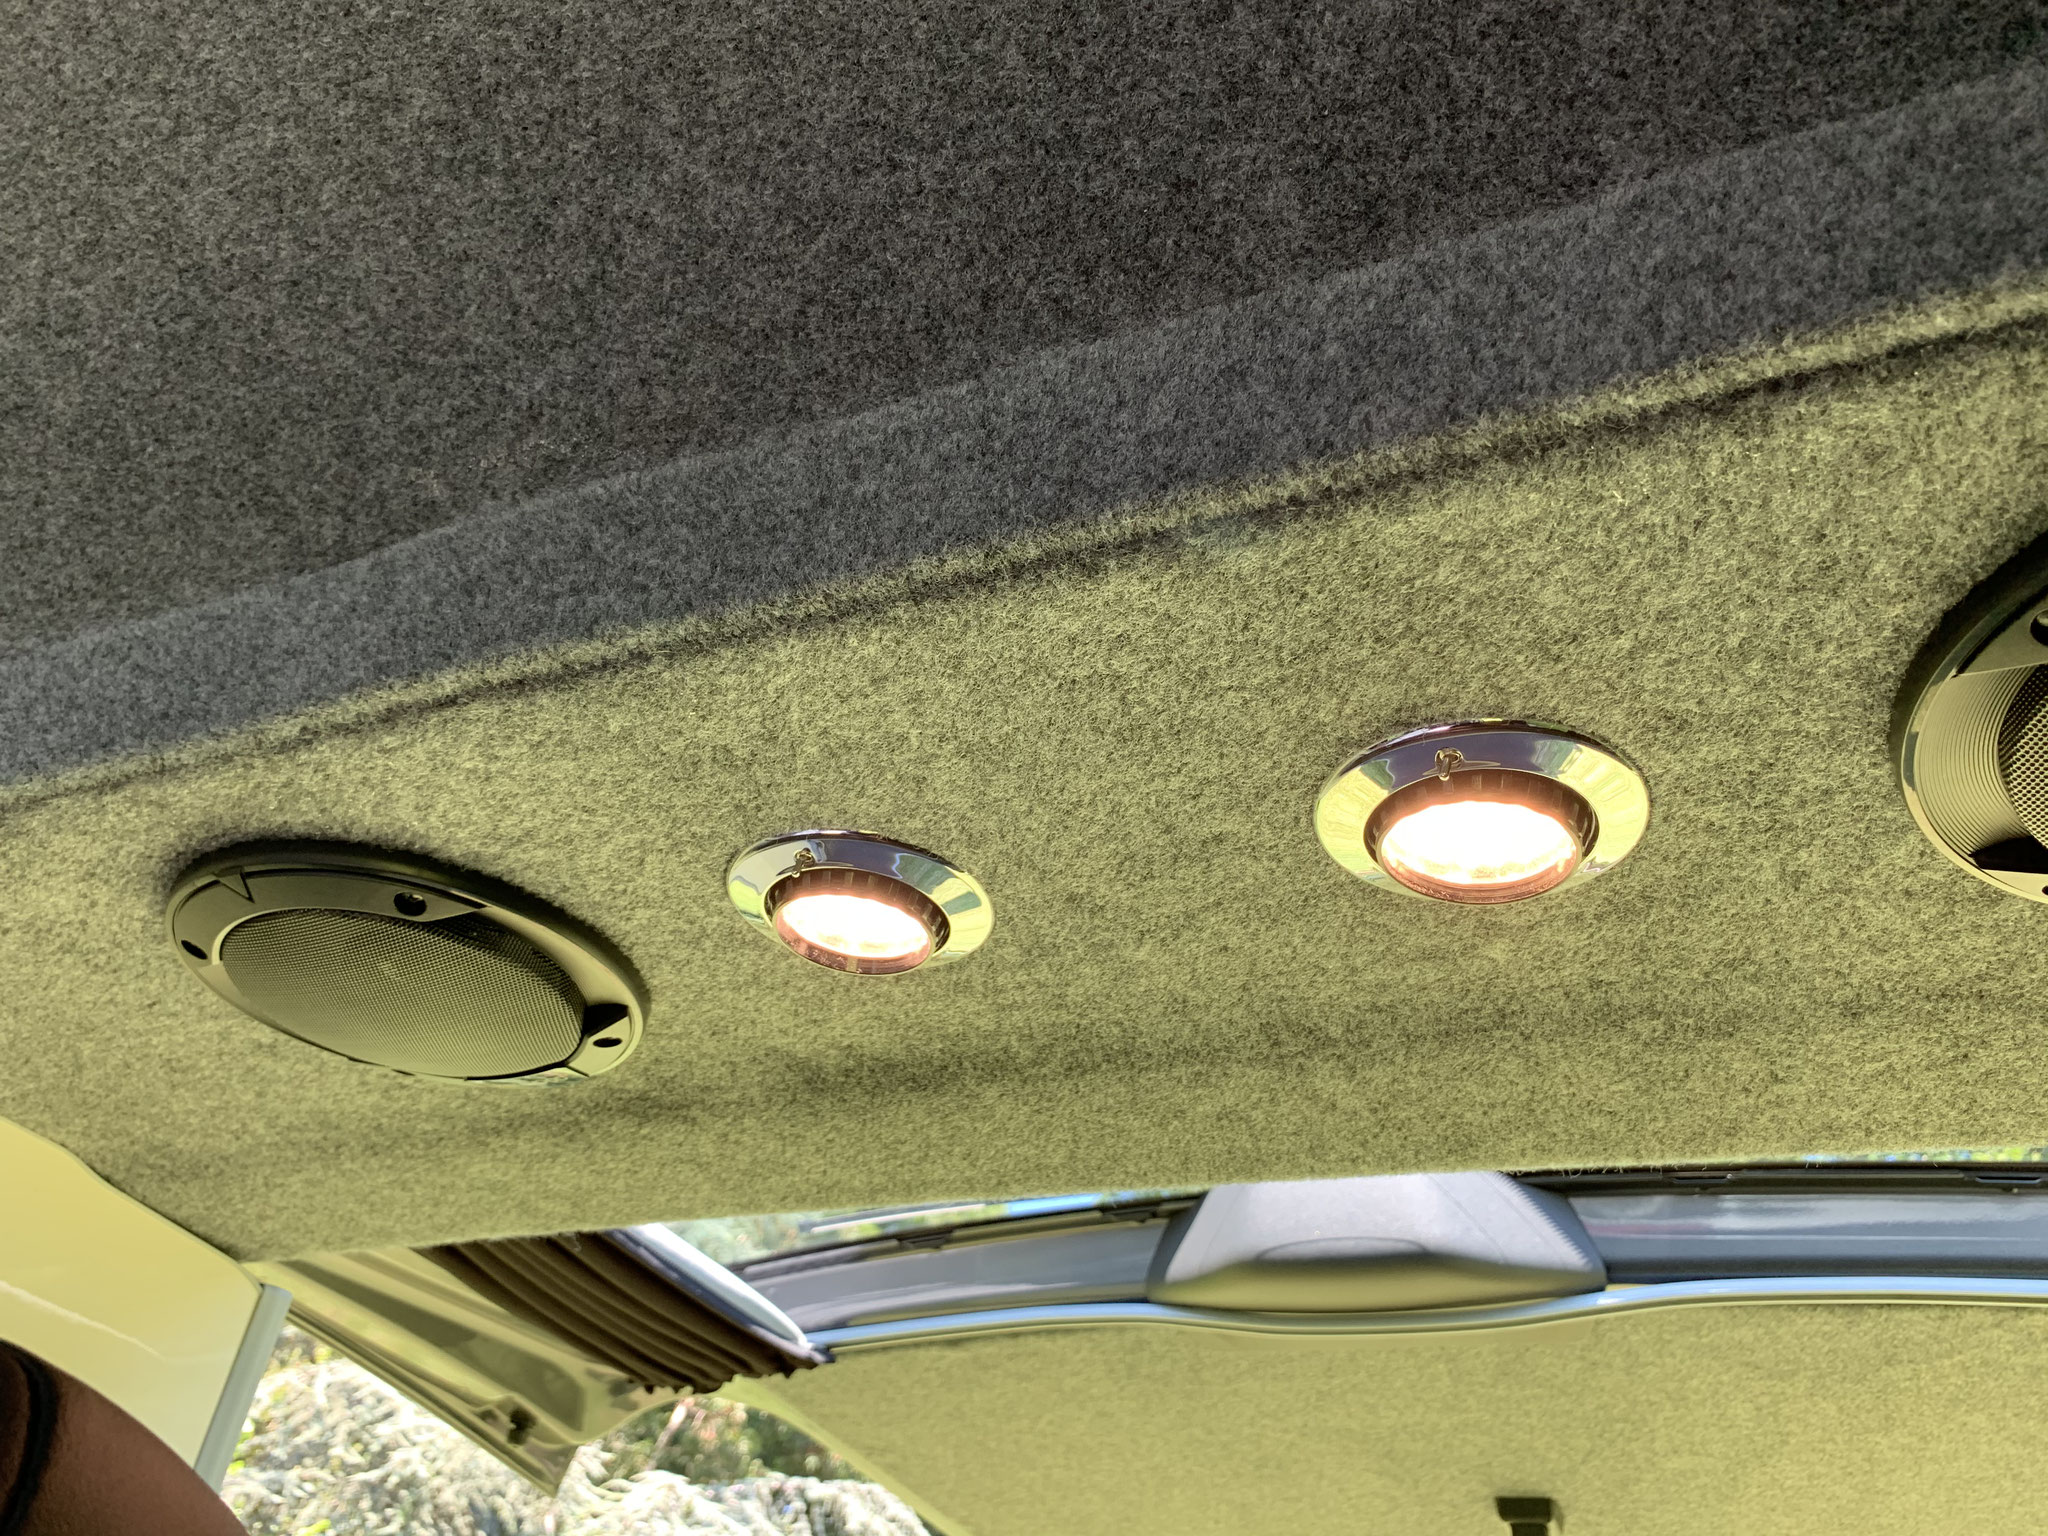 Rear speakers and adjustable reading LED lights